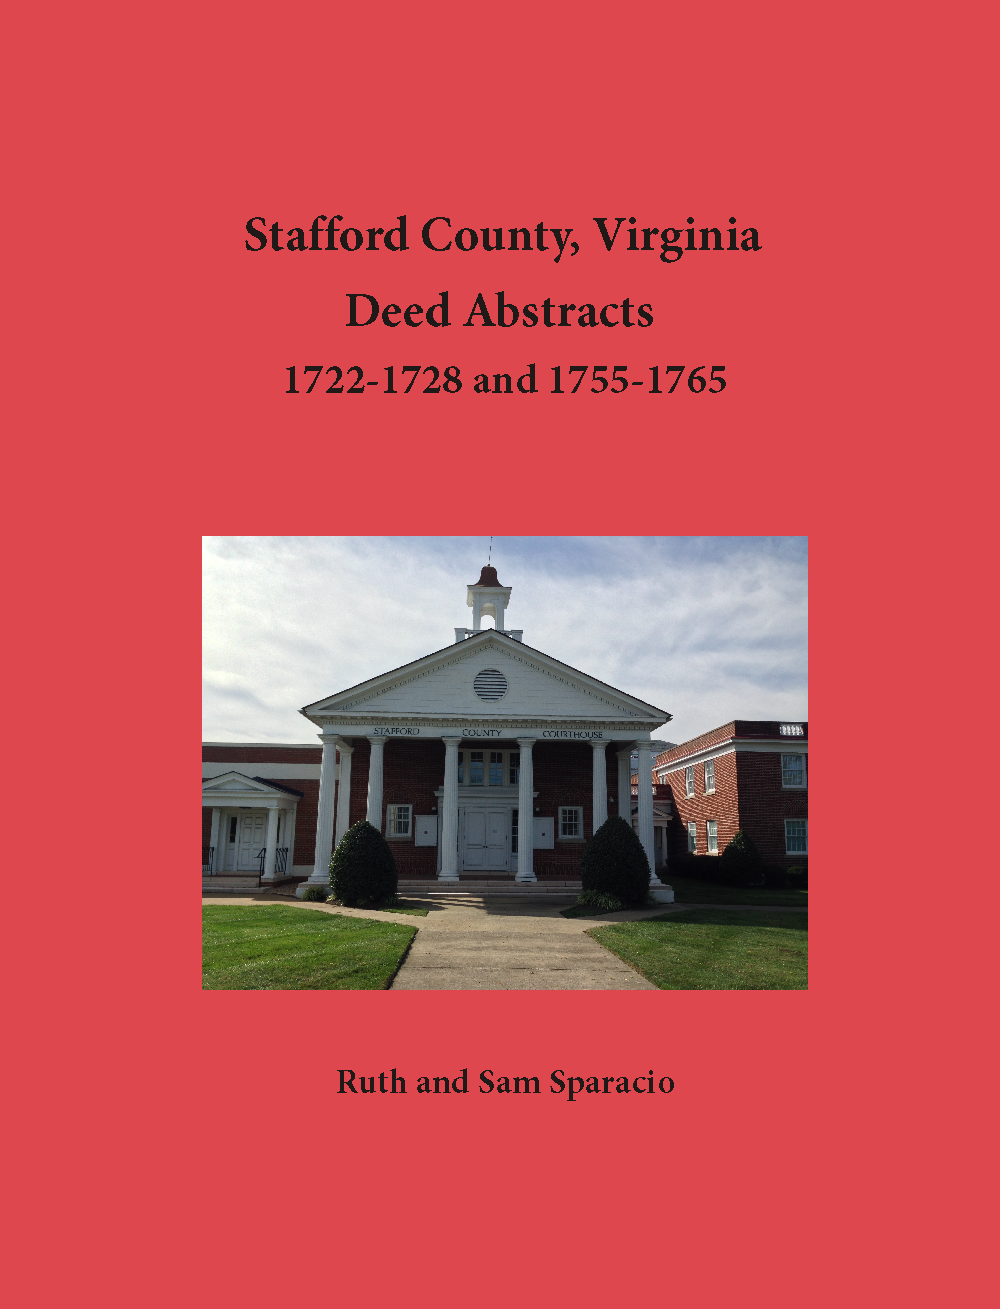 Stafford County, Virginia Deed Book, 1722-1728 and 1755-1765